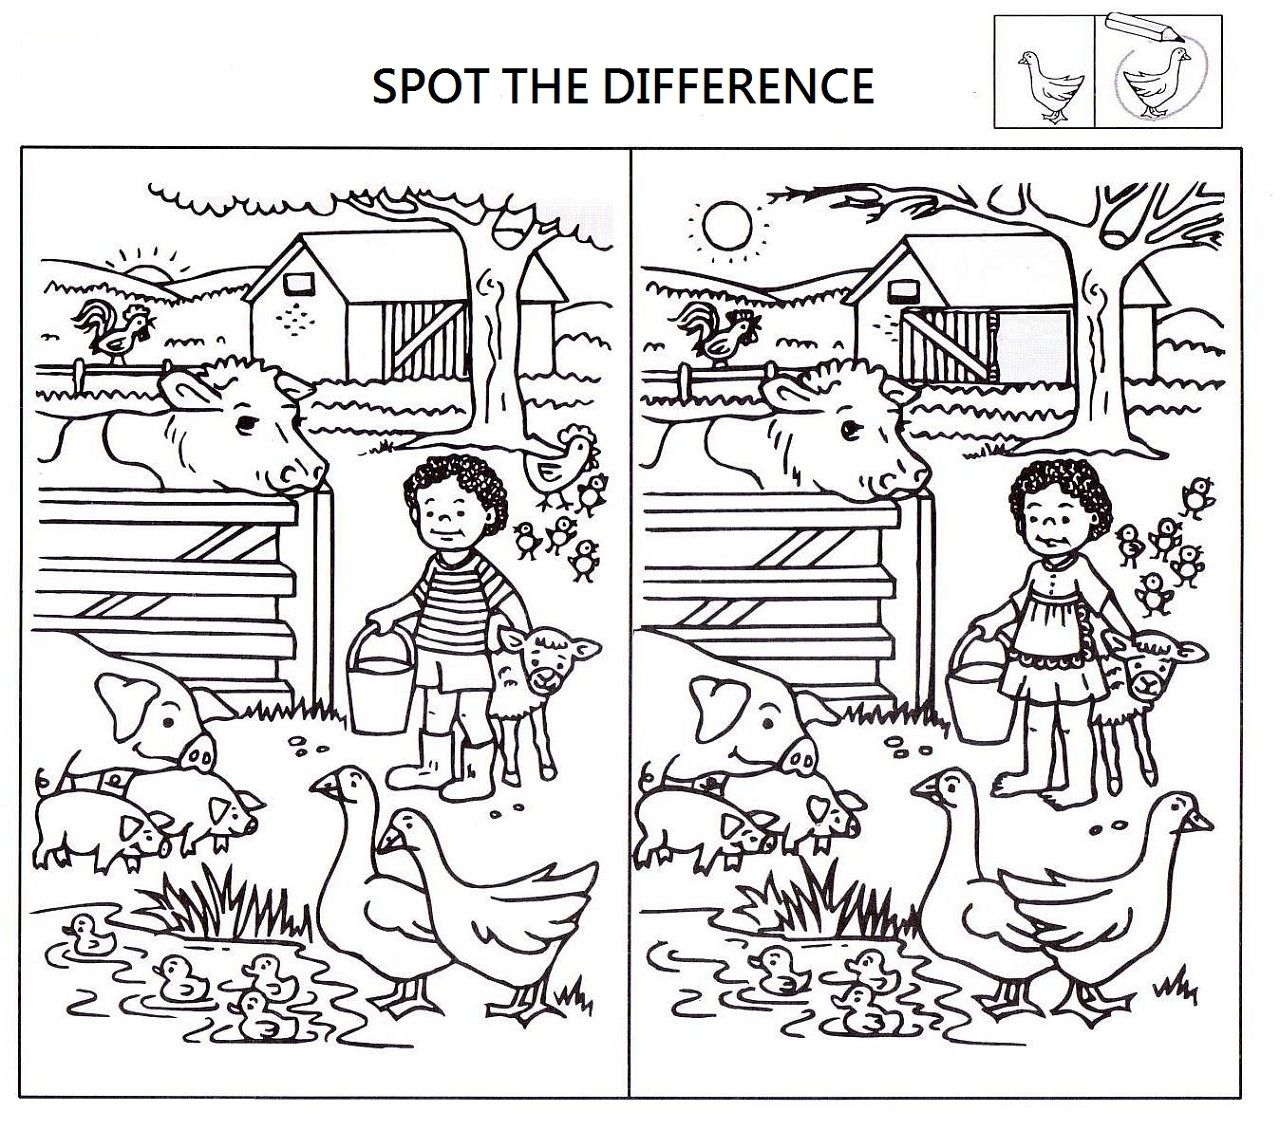 Spot The Difference Worksheets For Kids | English Language | Spot - Printable Spot The Difference Puzzle